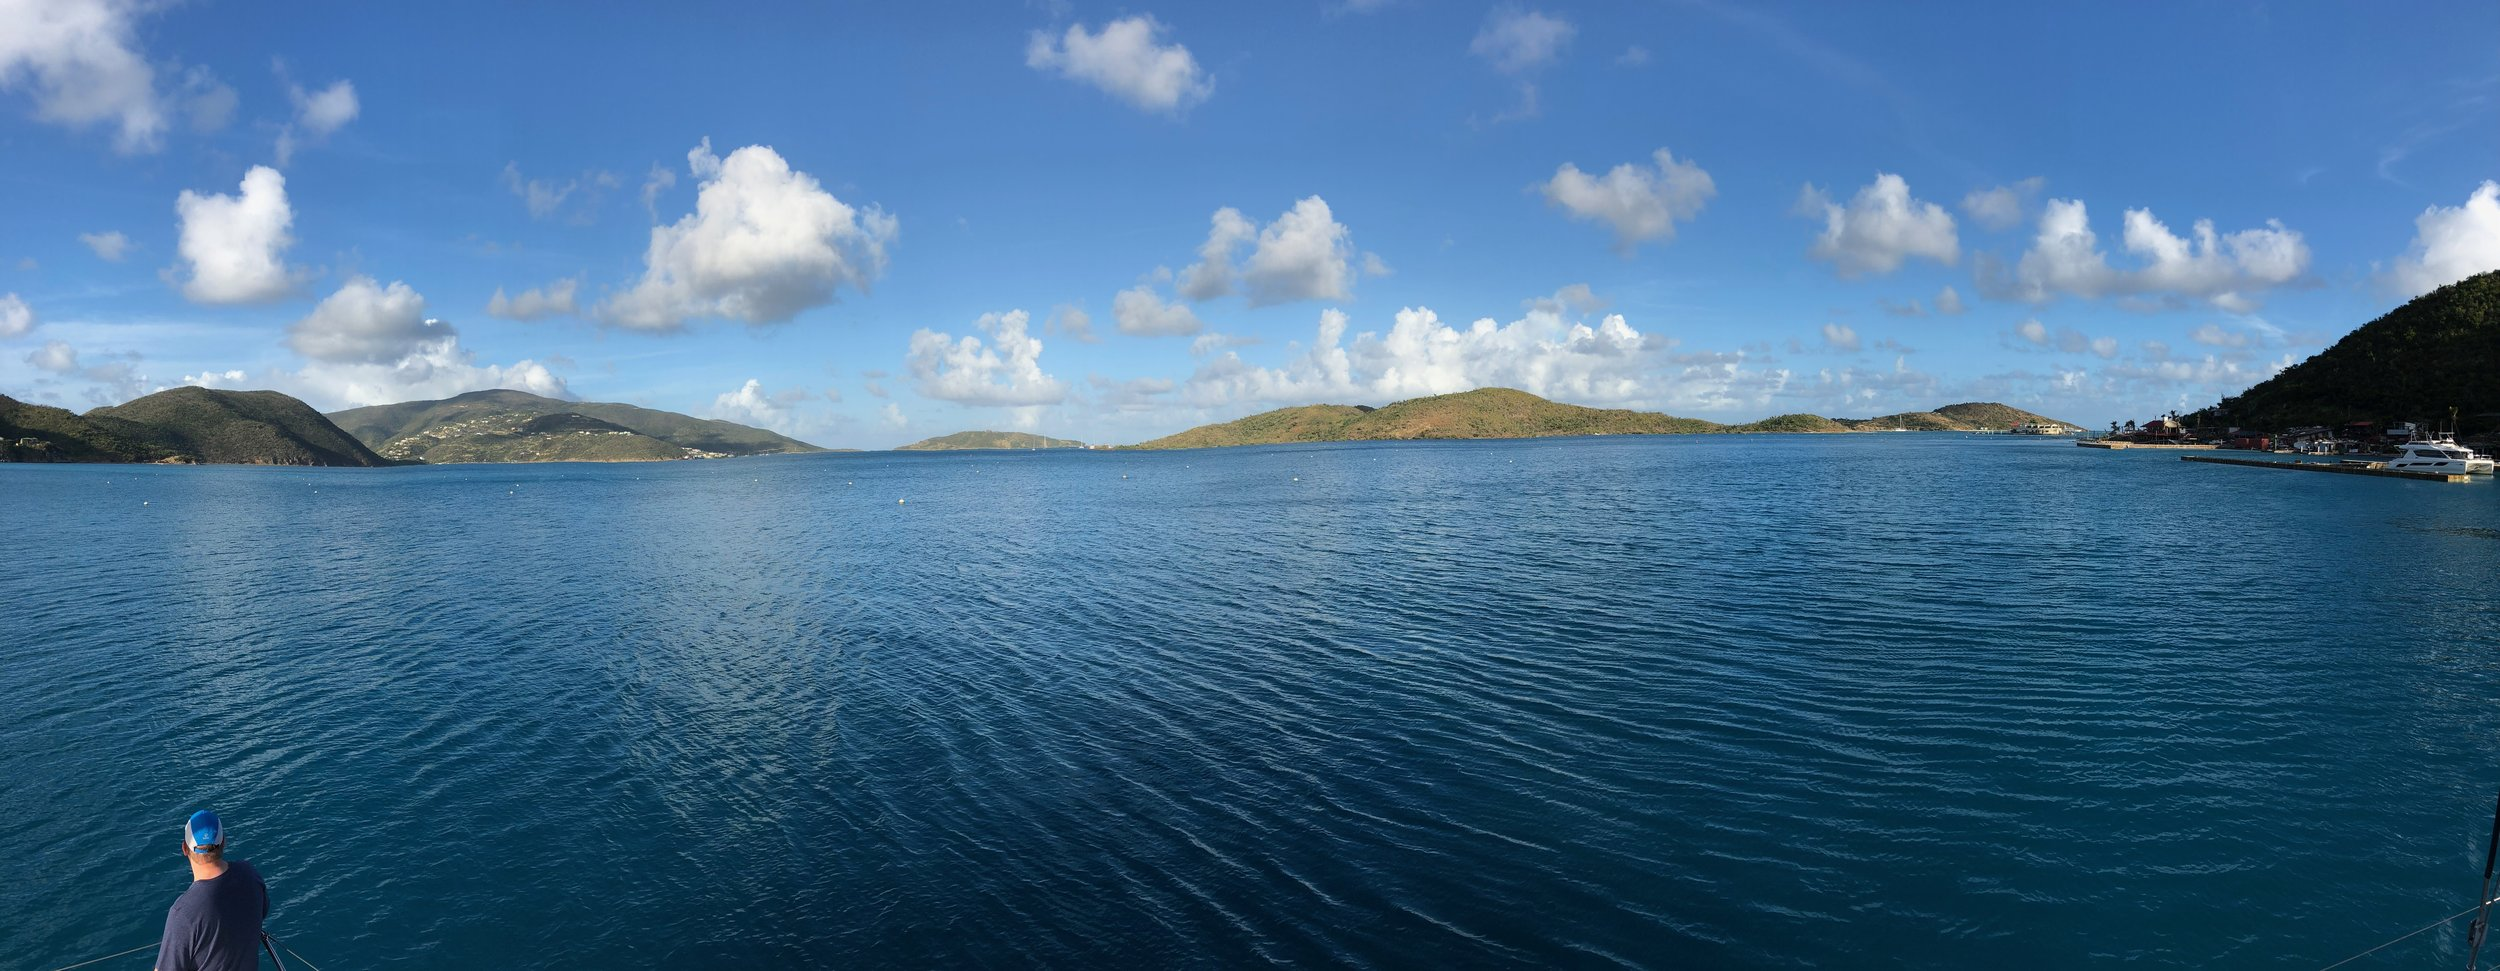 Panoramic photo of North Sound, Virgin Gorda, BVI